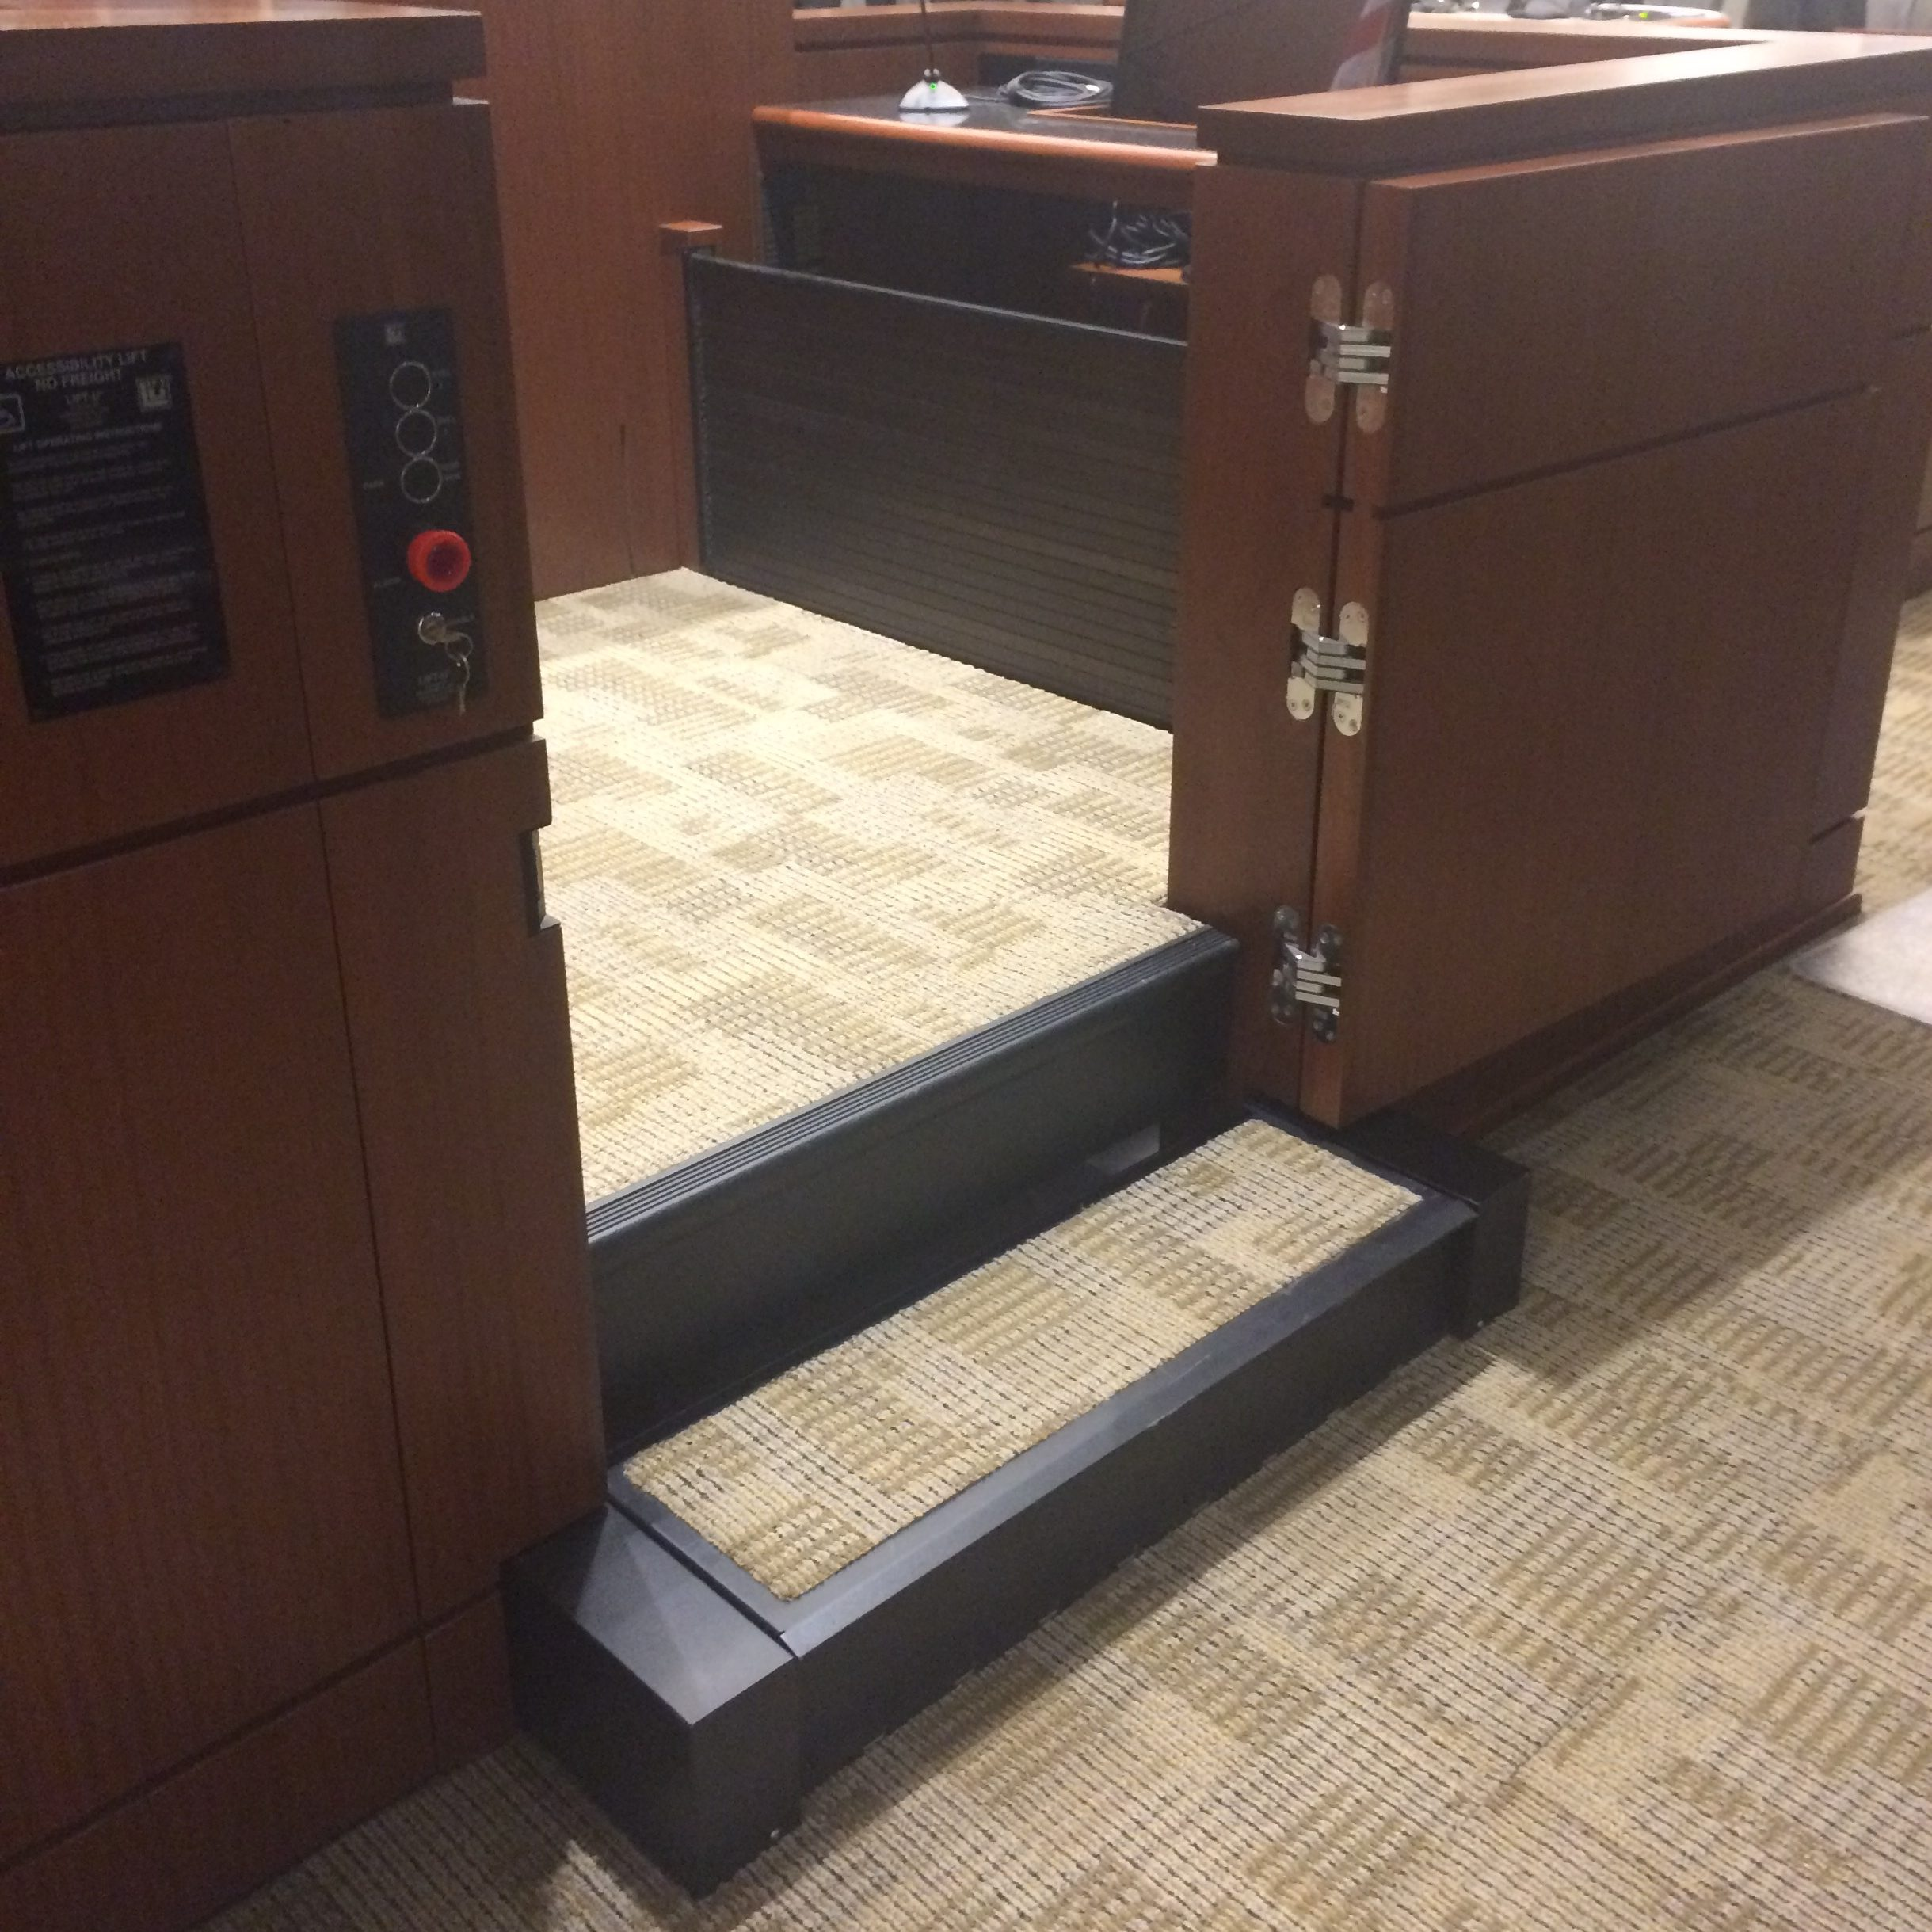 Witness lift positioned at witness level with lower level door opened. Equipped with operable step to allow ambulatory access. Roll-up barrier is up to guard the desk area during lift operation. Lift encased in wood millwork blending in with courtroom millwork. Lift is readily available and independently operable